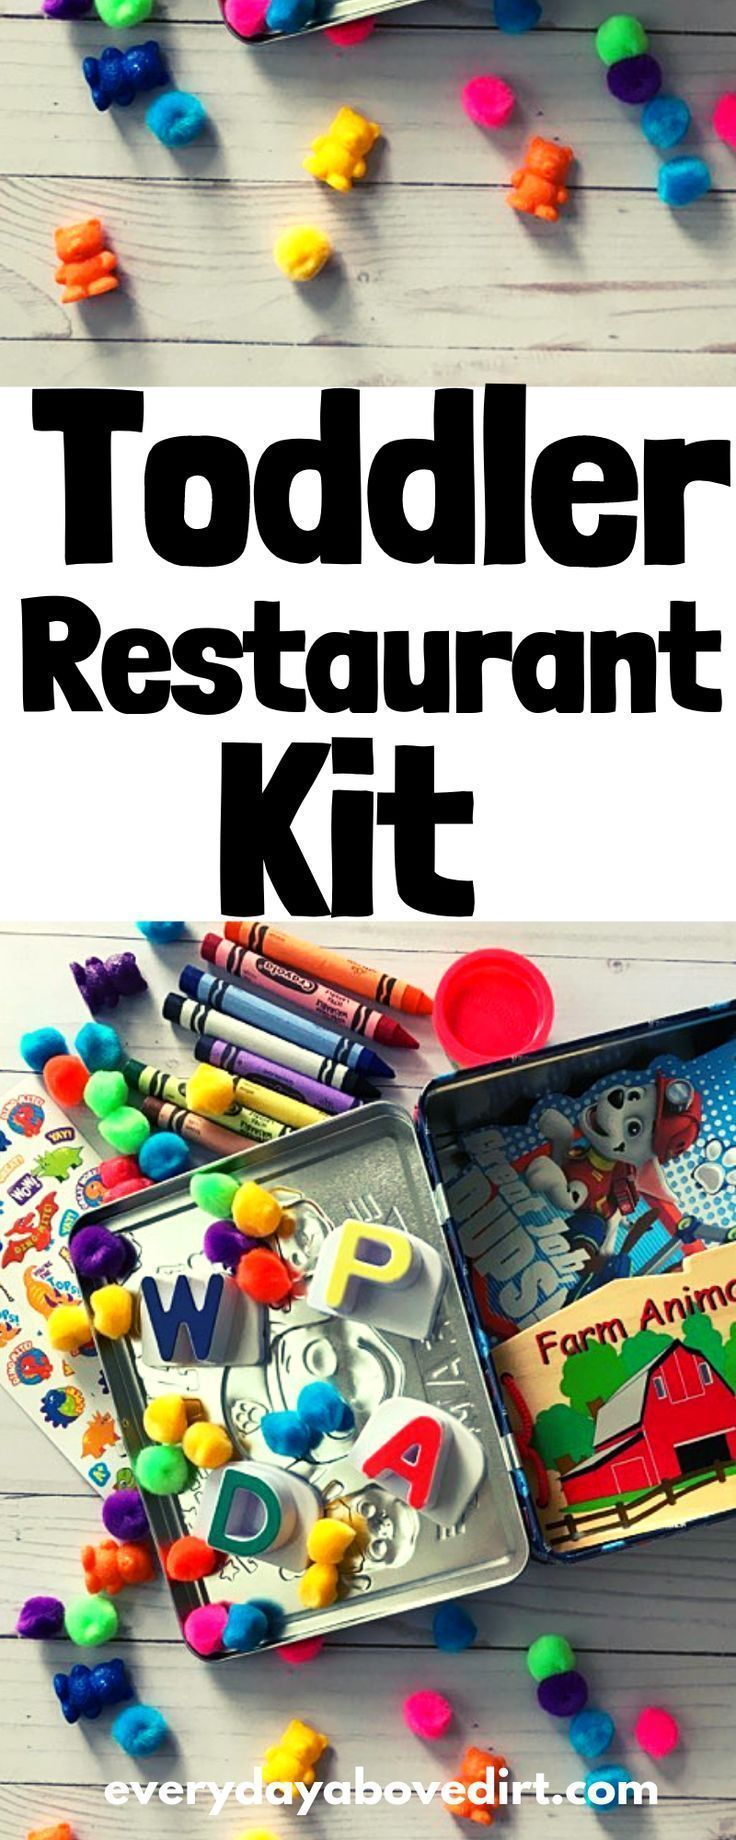 Toddler Restaurant Kit #toddlers